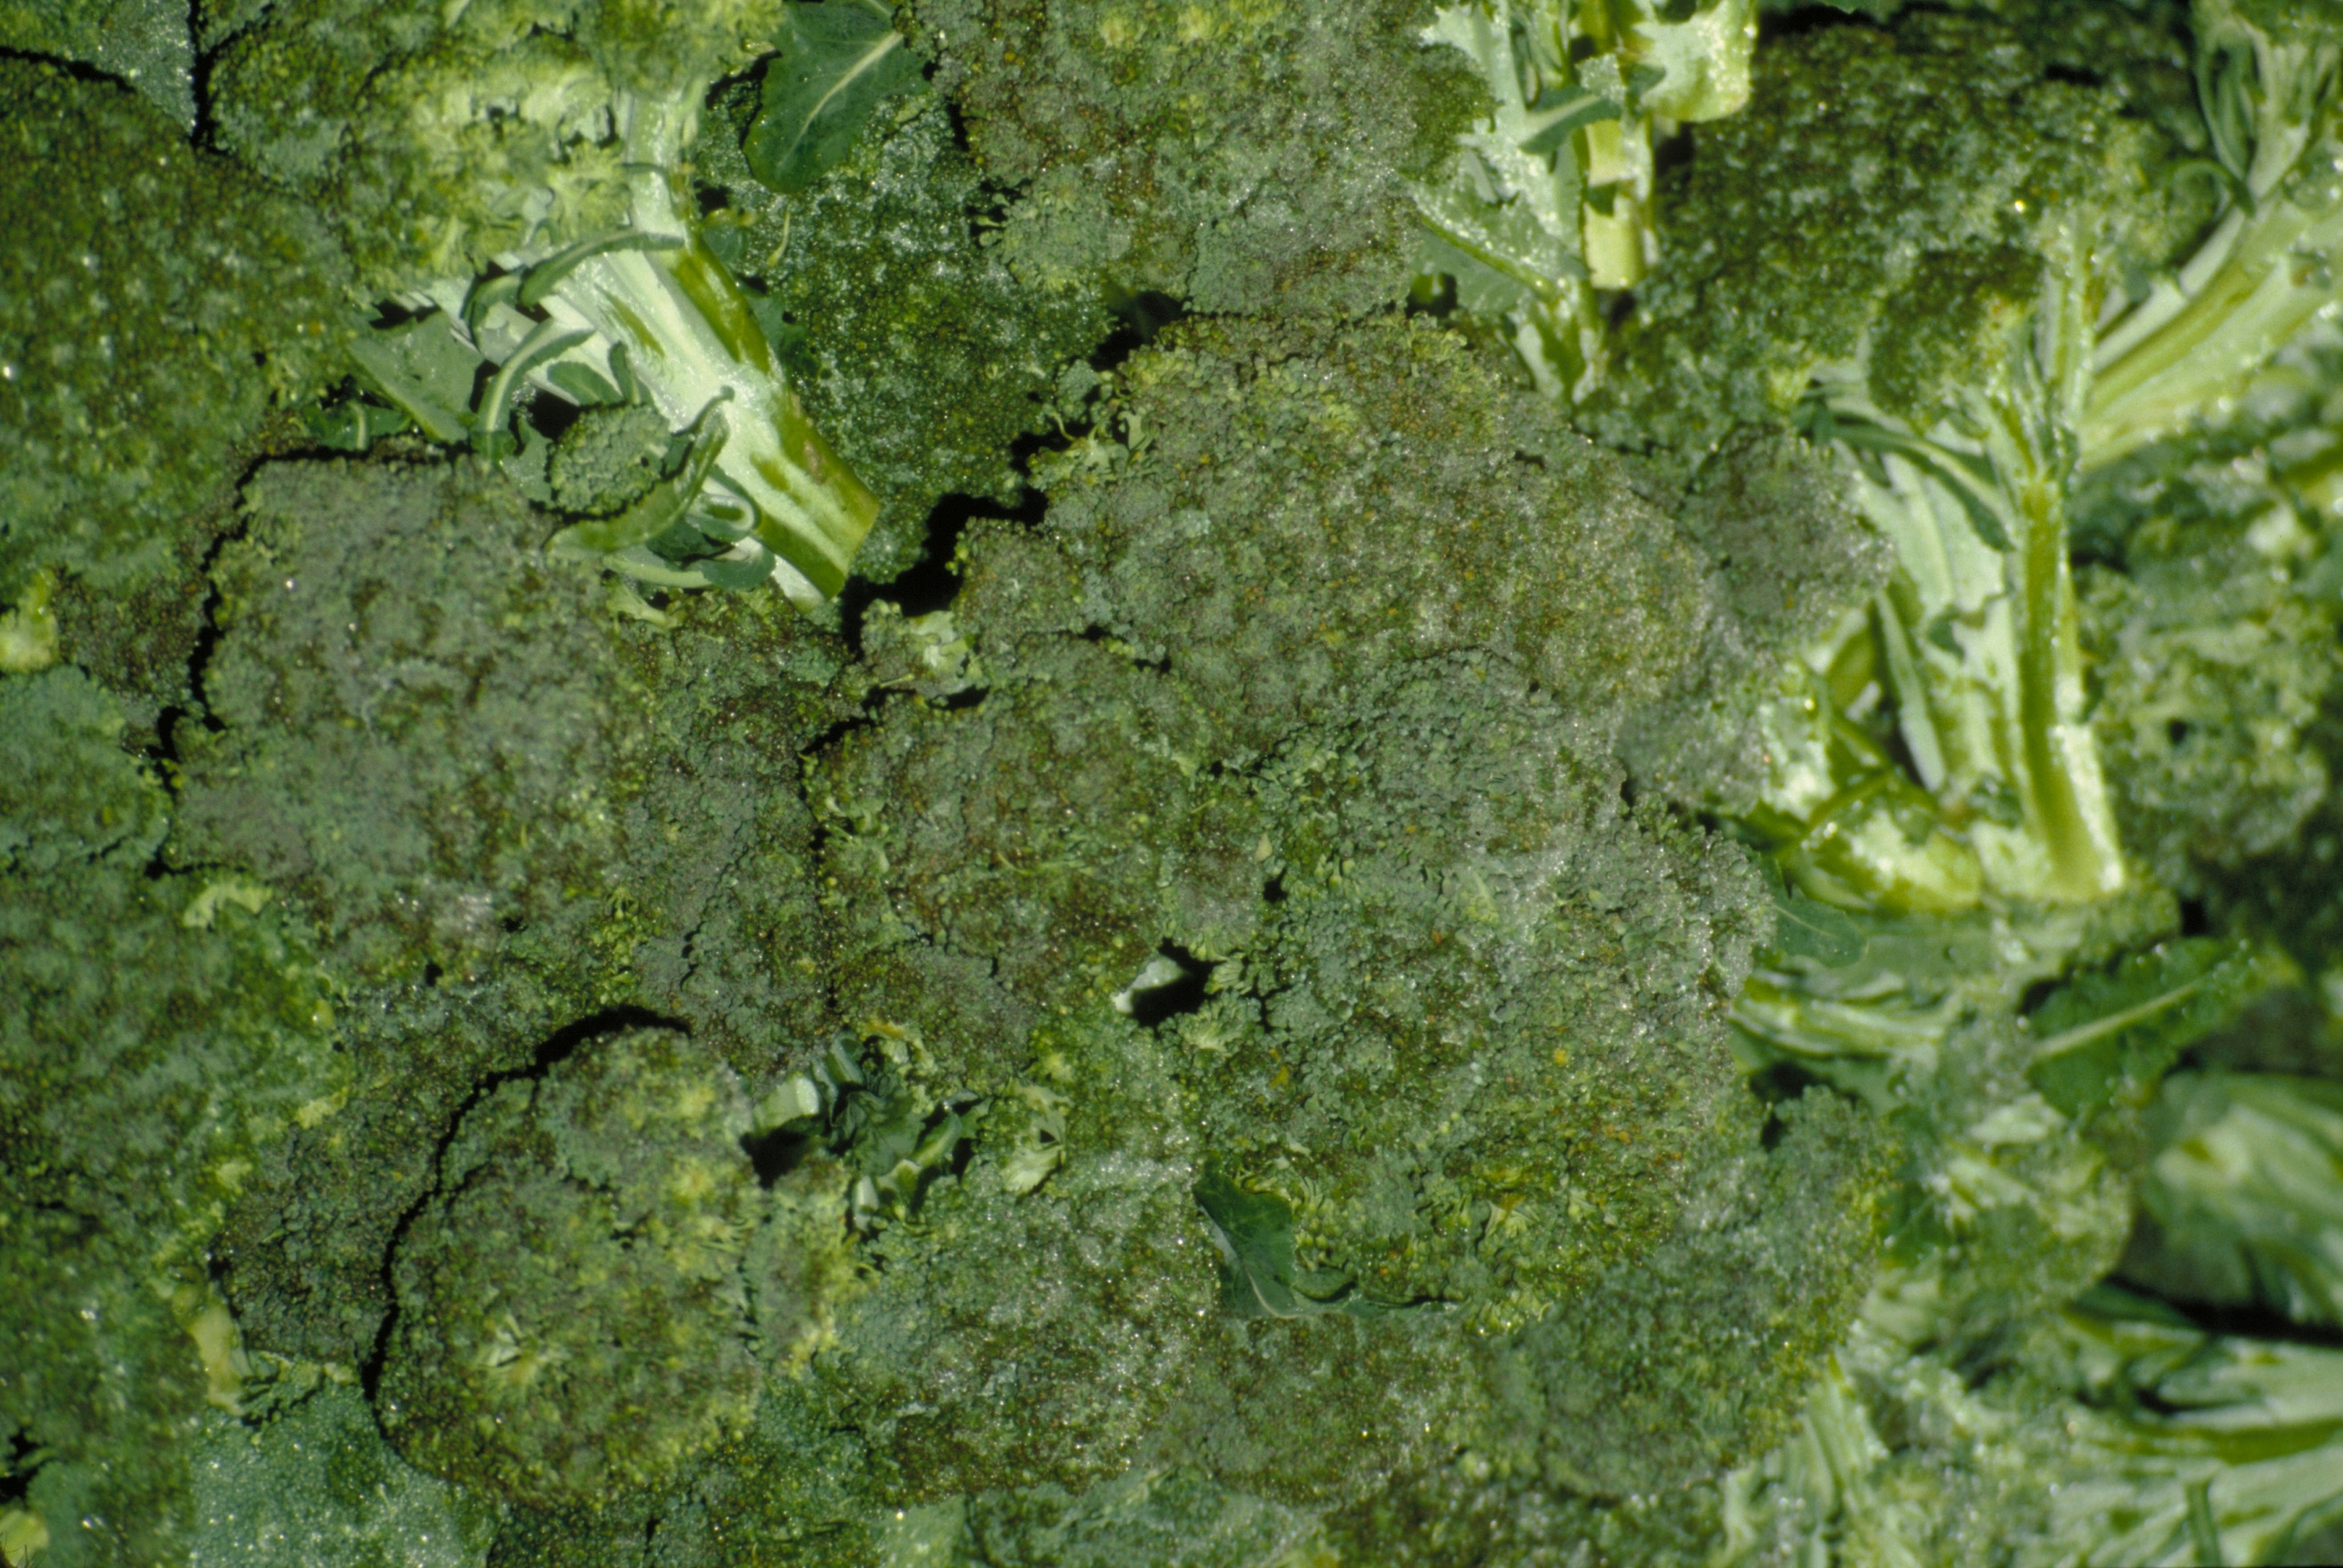 Broccoli, either raw or cooked, contains only a small amount of protein.